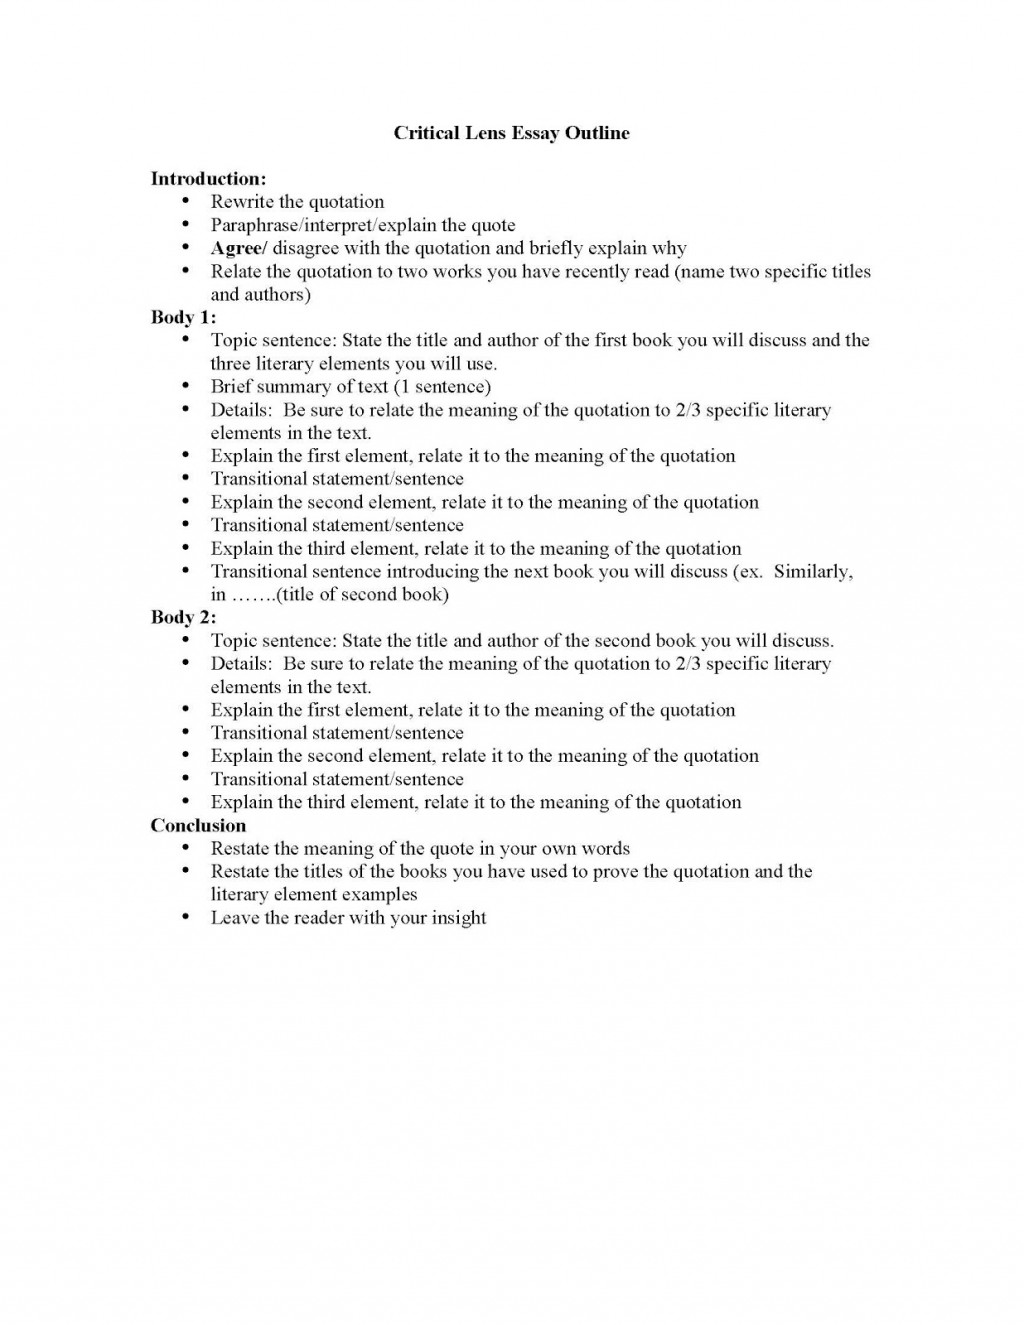 009 Descriptive Essay Outline Critical20lens20essay20outline20and20literay20elements Page 1 Outstanding Examples Template Pdf About A Person Large